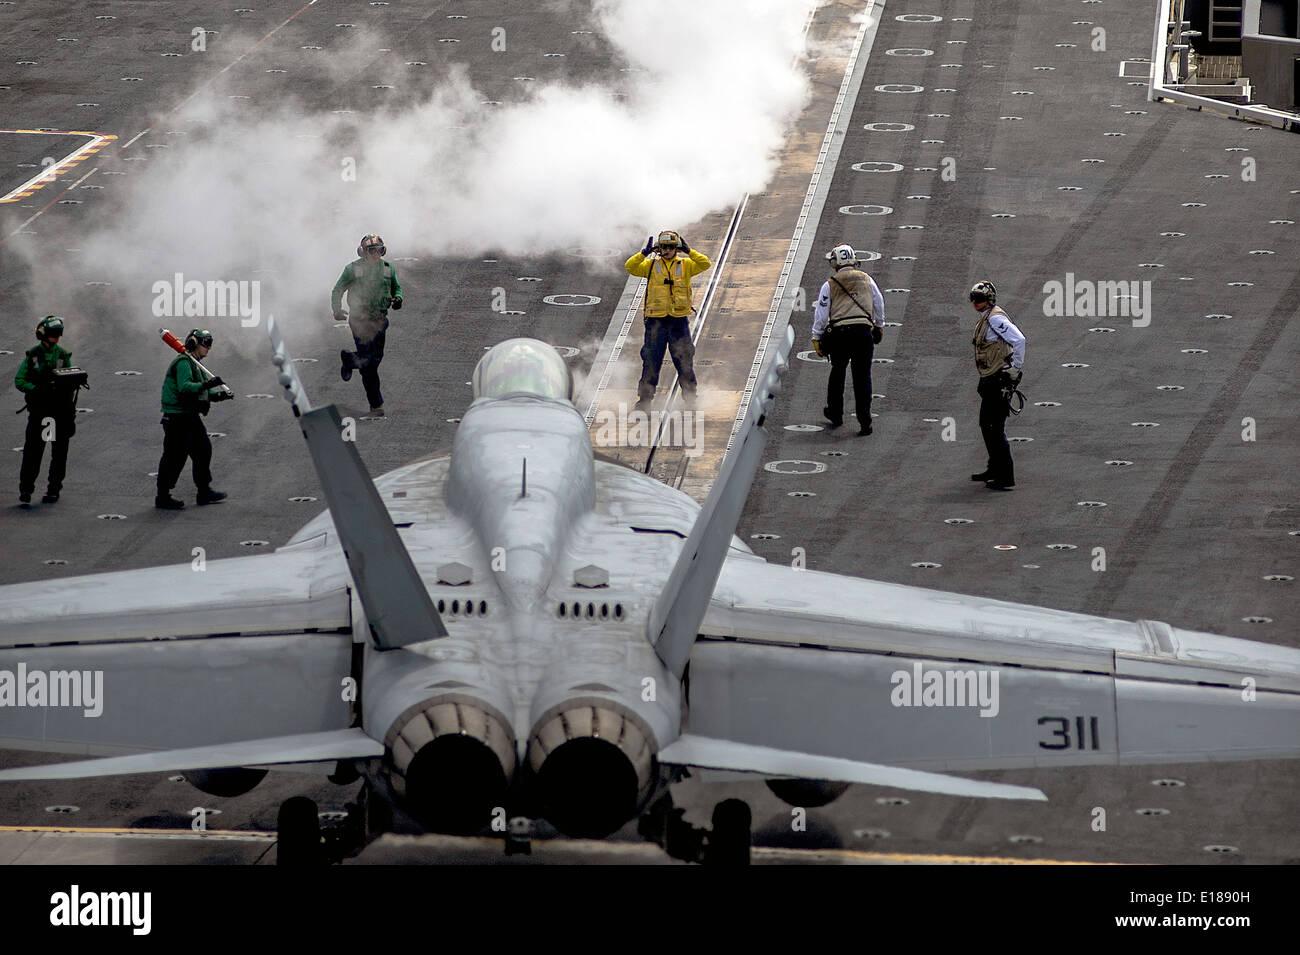 US Navy sailors direct the pilot of an F/A-18E Super Hornet fighter aircraft as it taxis to a catapult in preparation for launch on the flight deck of the Nimitz-class aircraft carrier USS George Washington during operations May 25, 2014 off the coast of Japan. - Stock Image